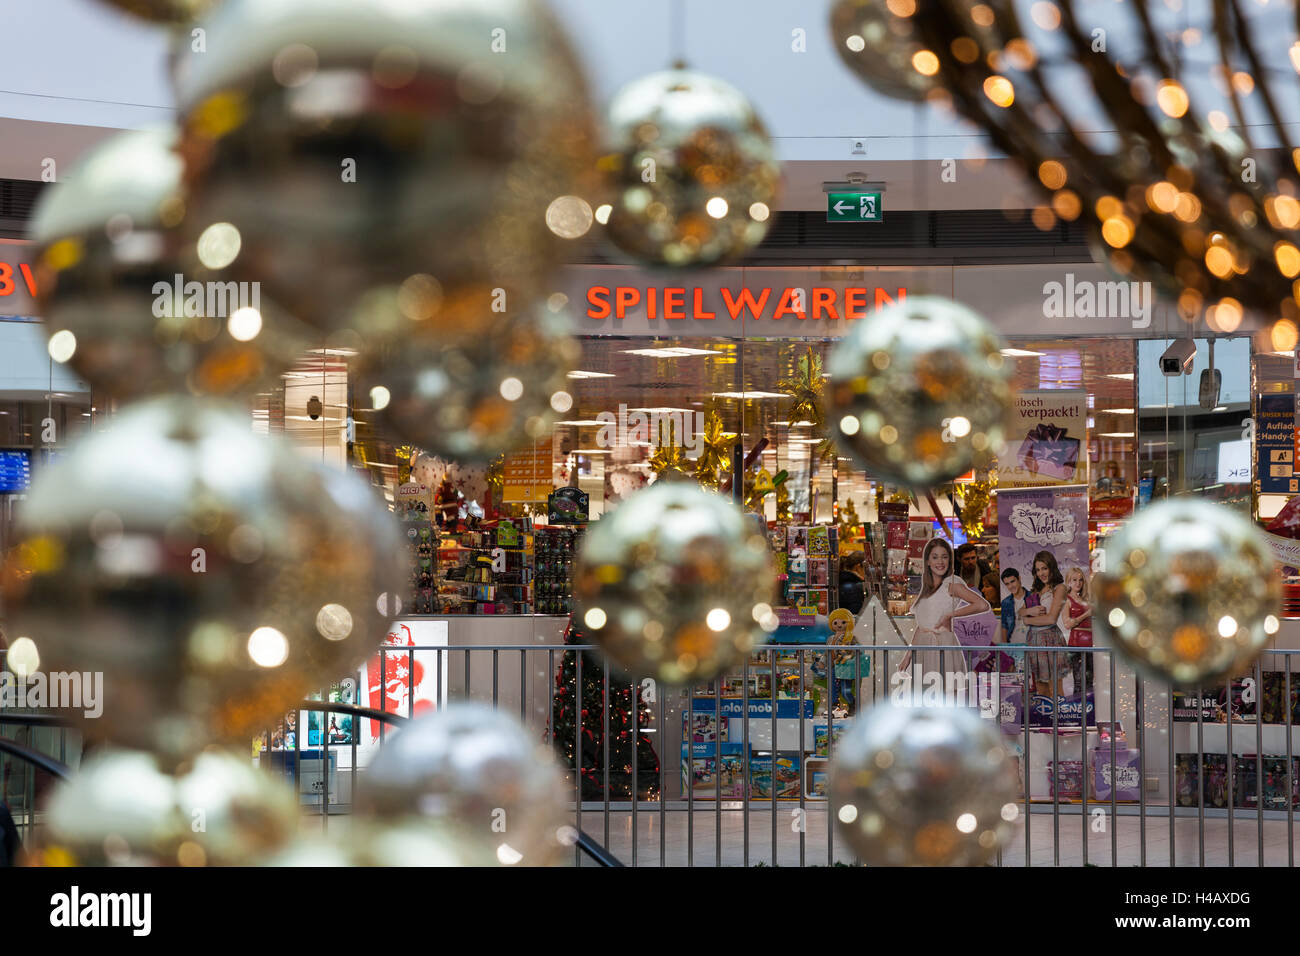 Europe, Austria, Vienna, Westbahnhof Railway Station, Toy Shop, Christmas  Decoration